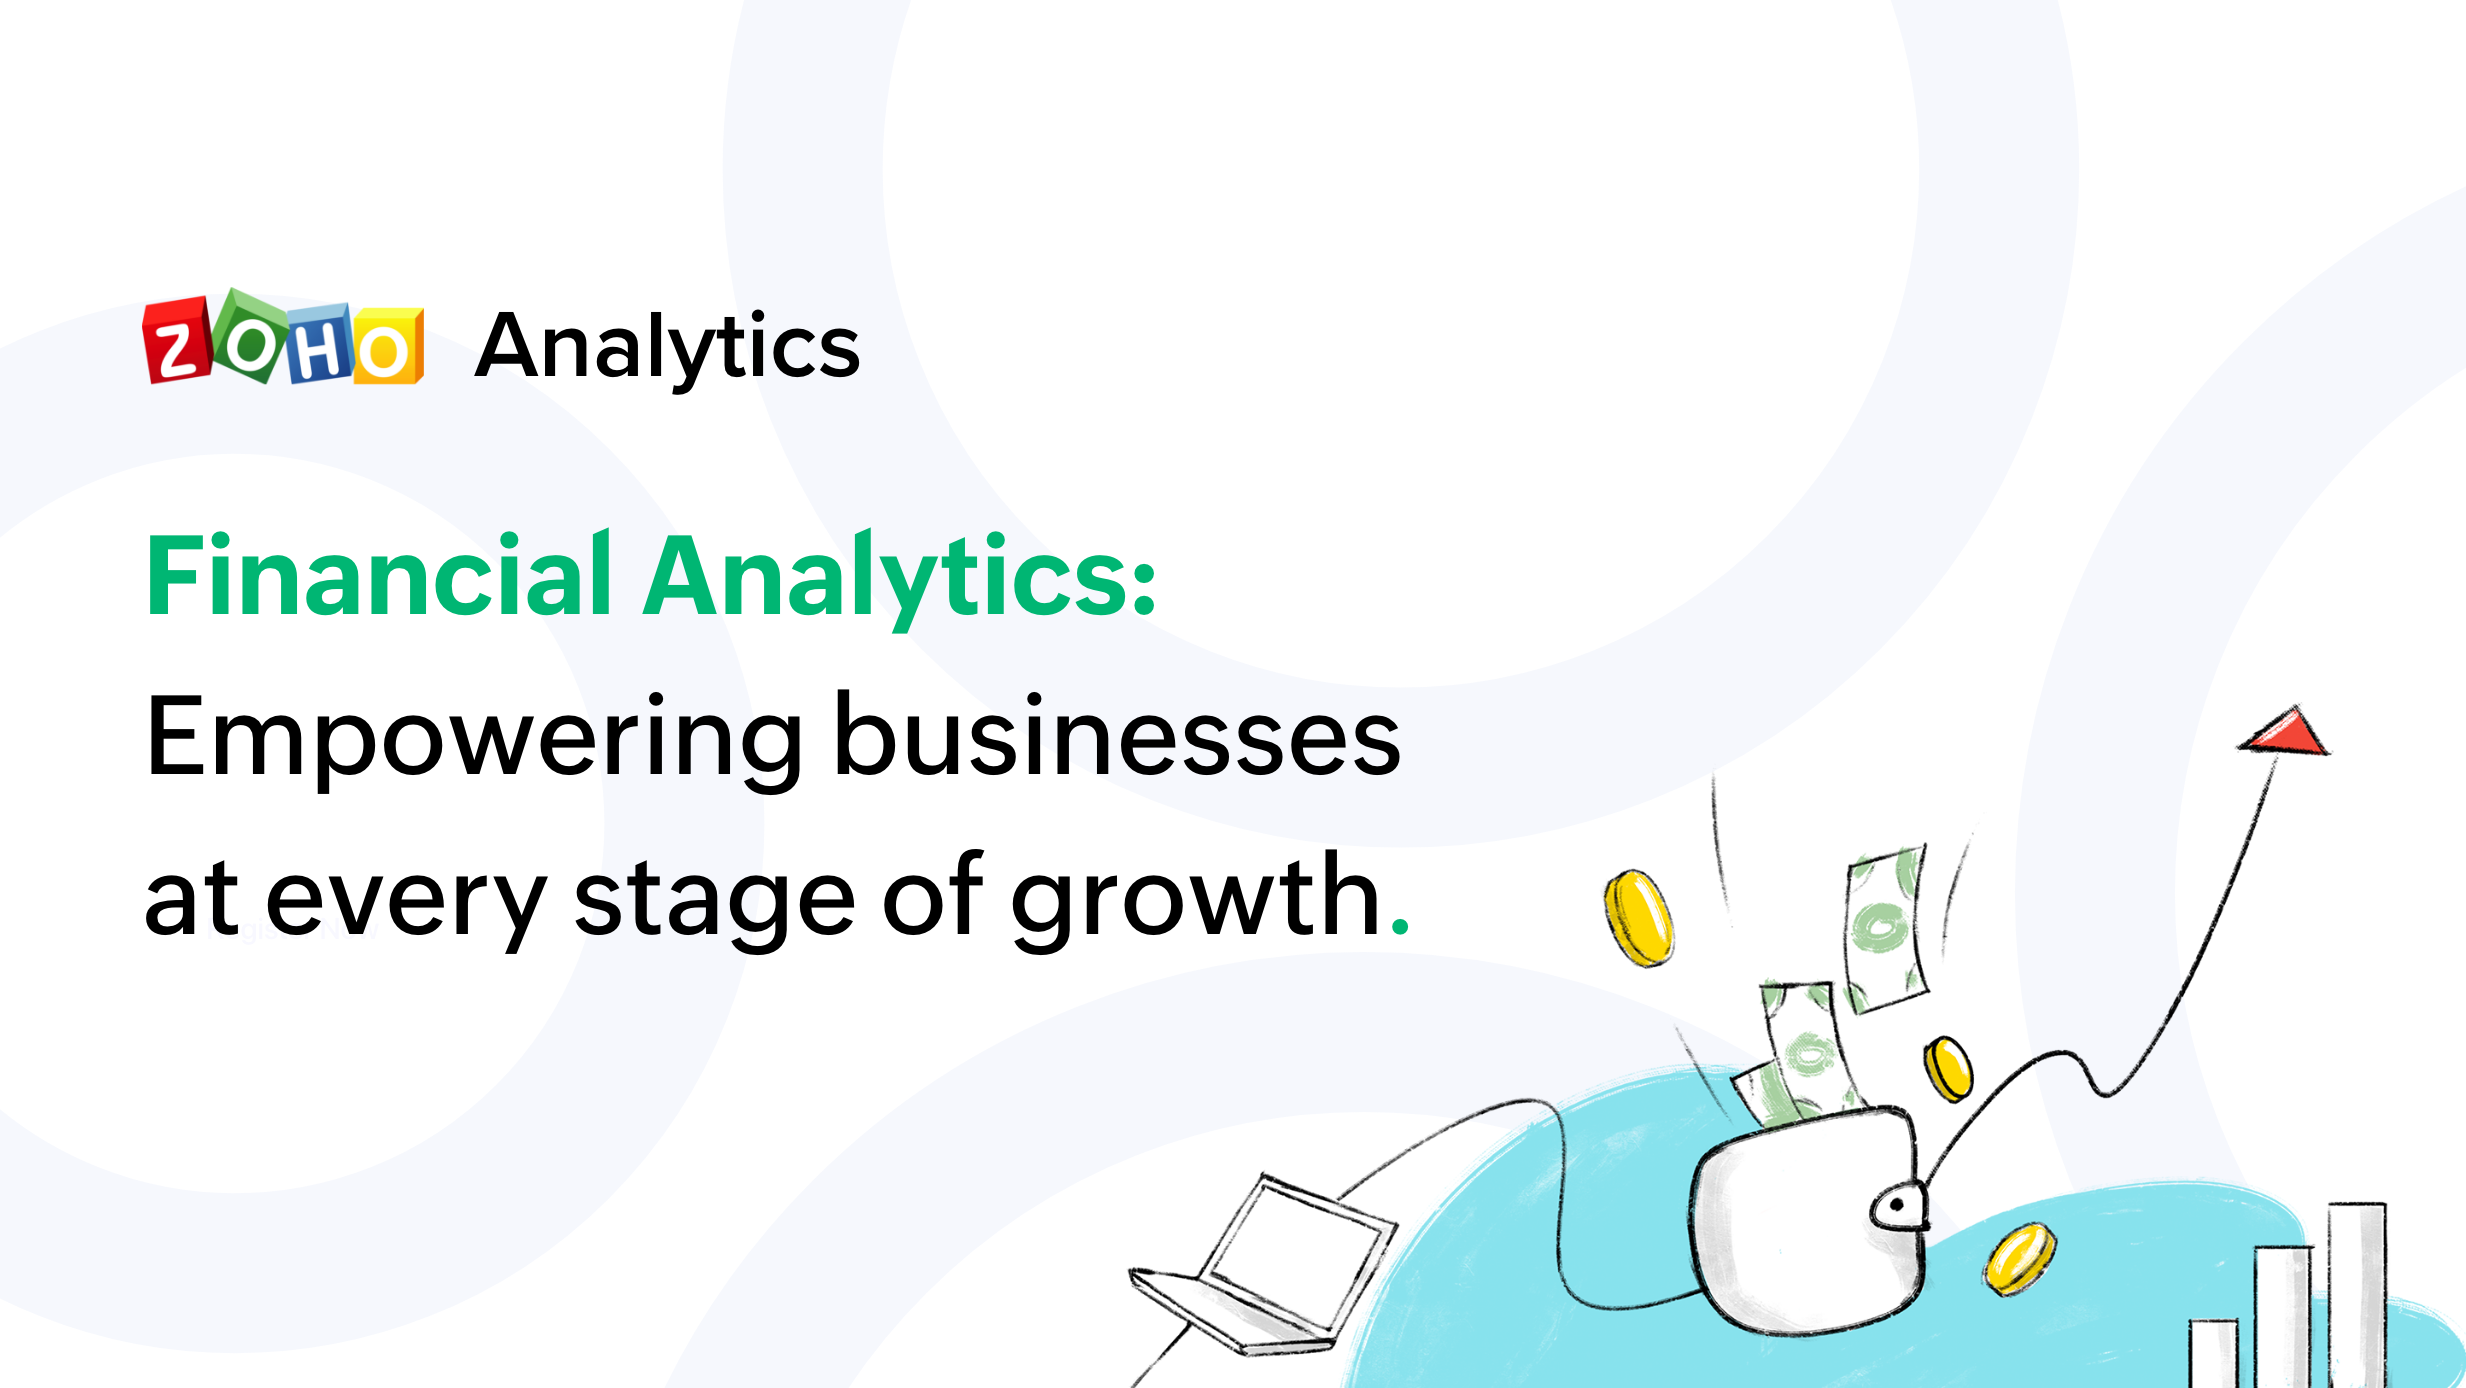 ‌Financial Analytics: Empowering businesses at every stage of growth